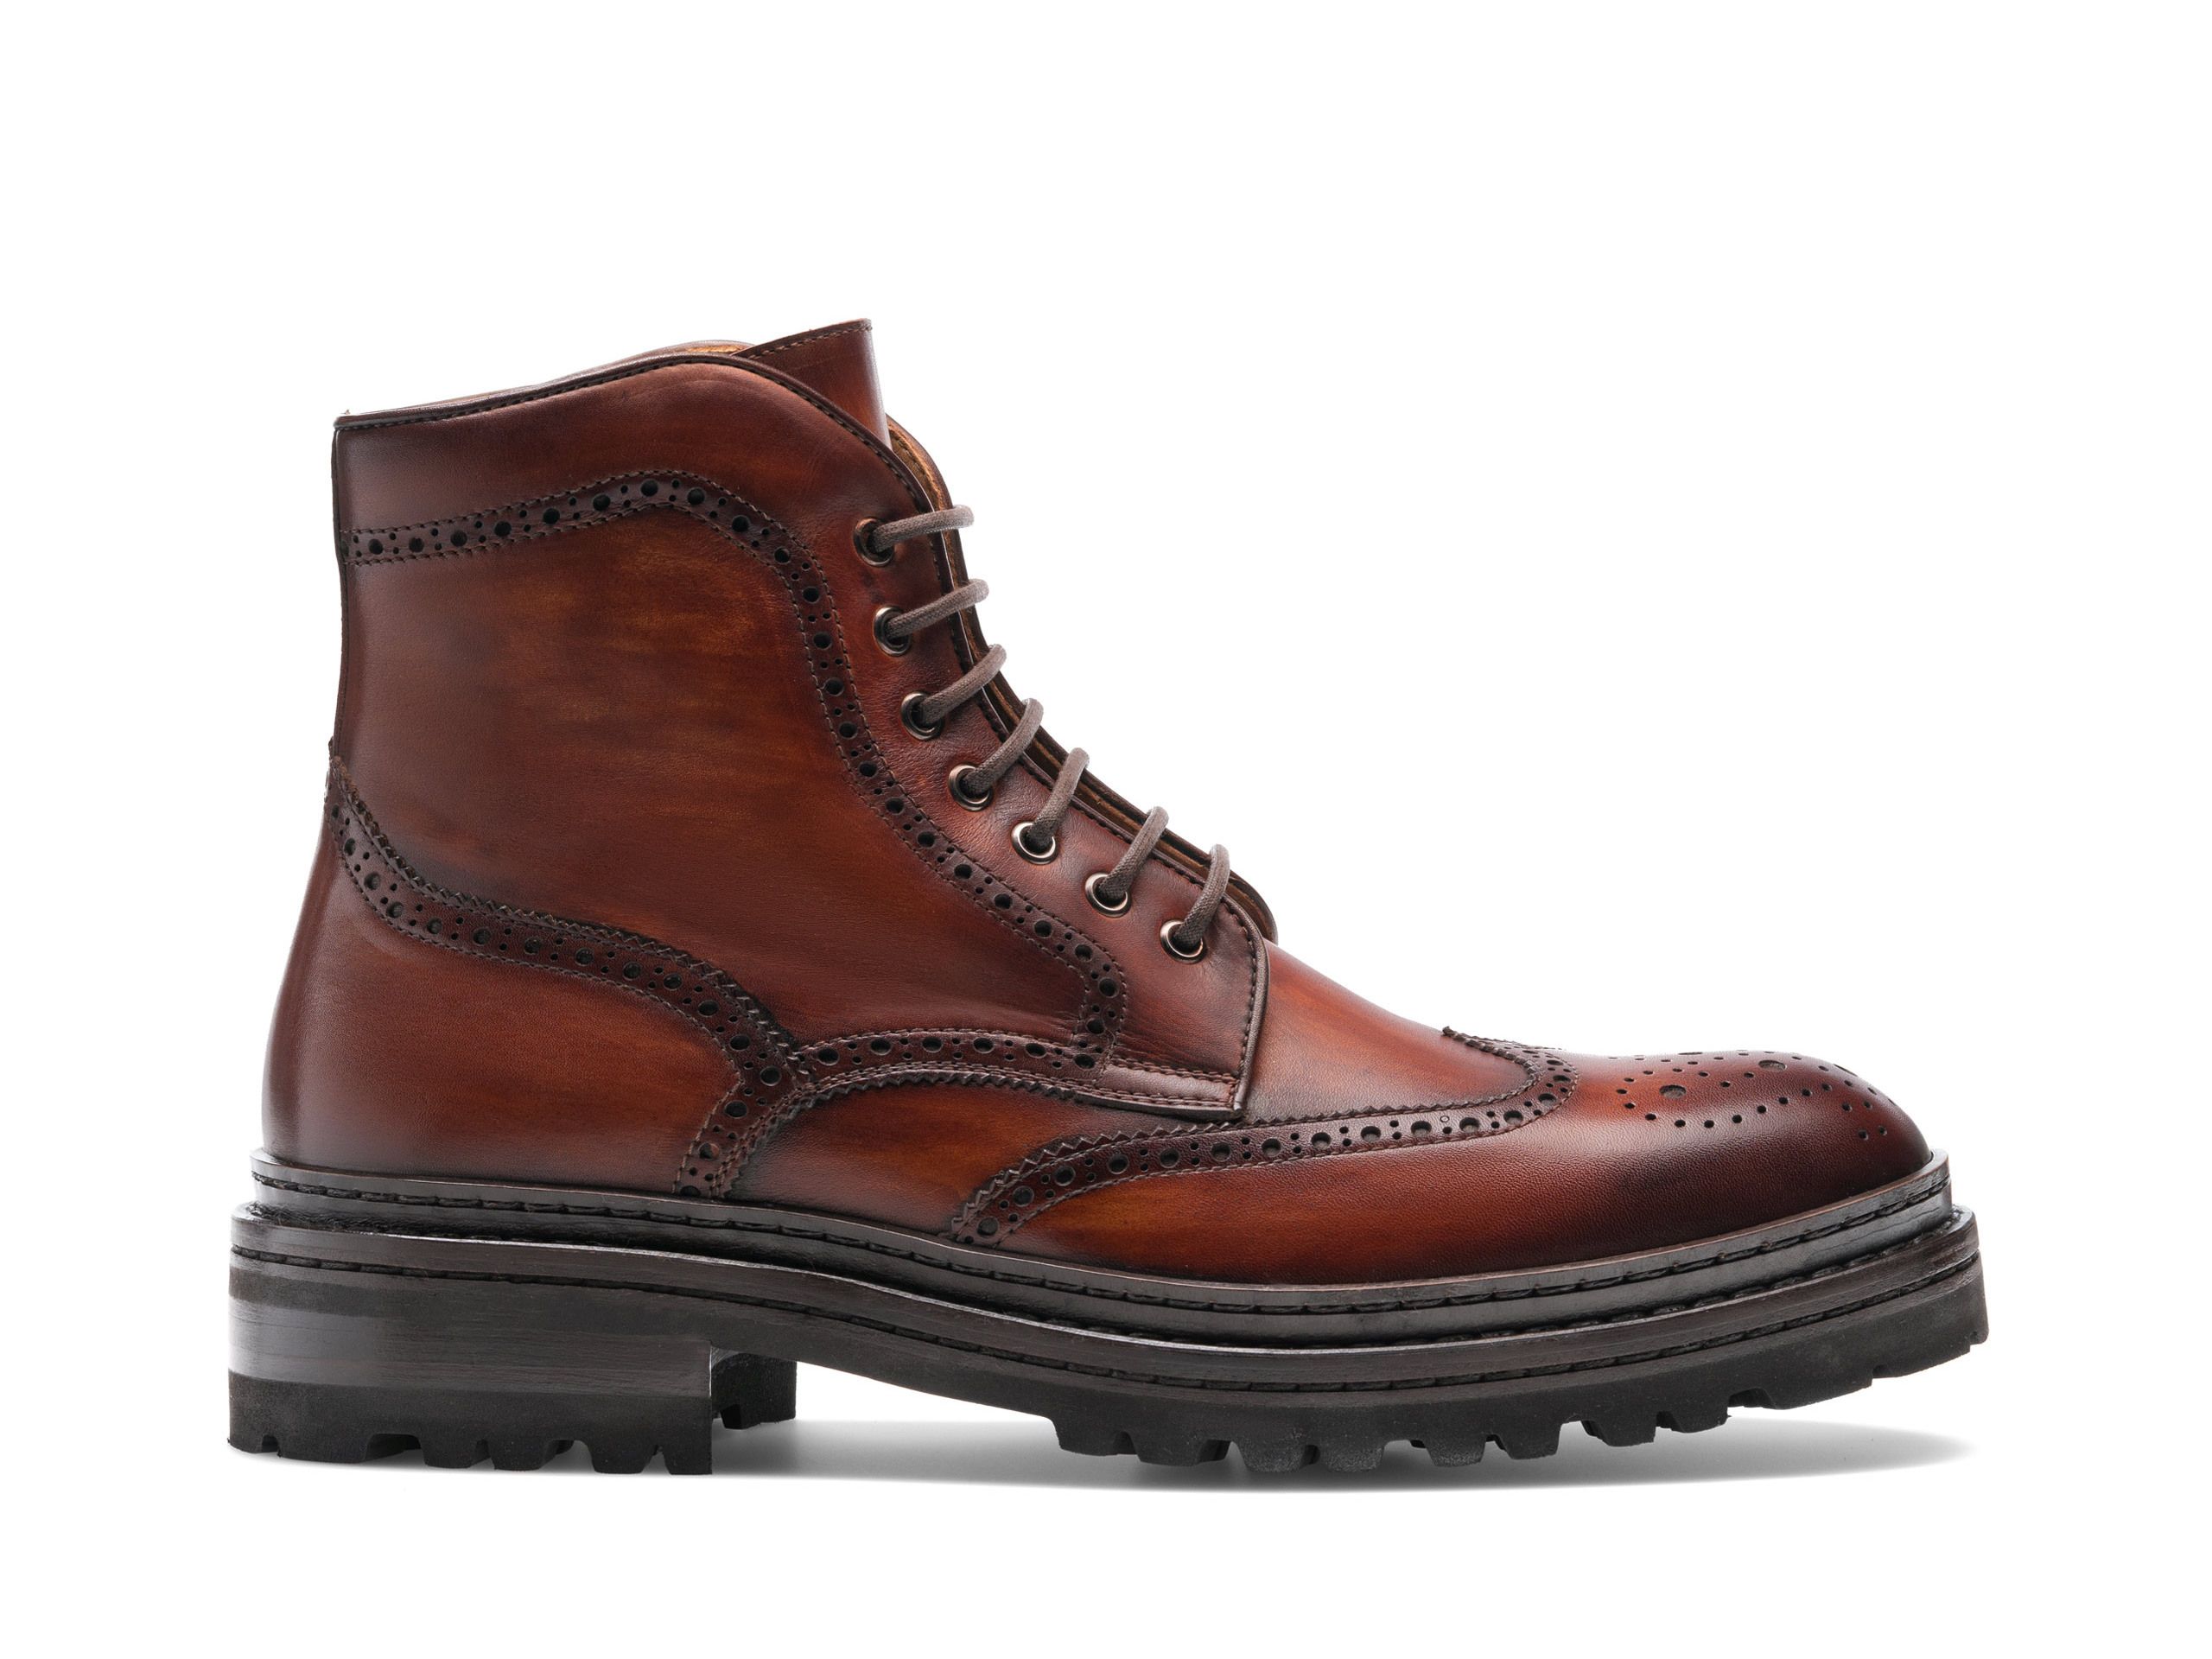 Side view of the Magnanni Daroca Cognac Boots